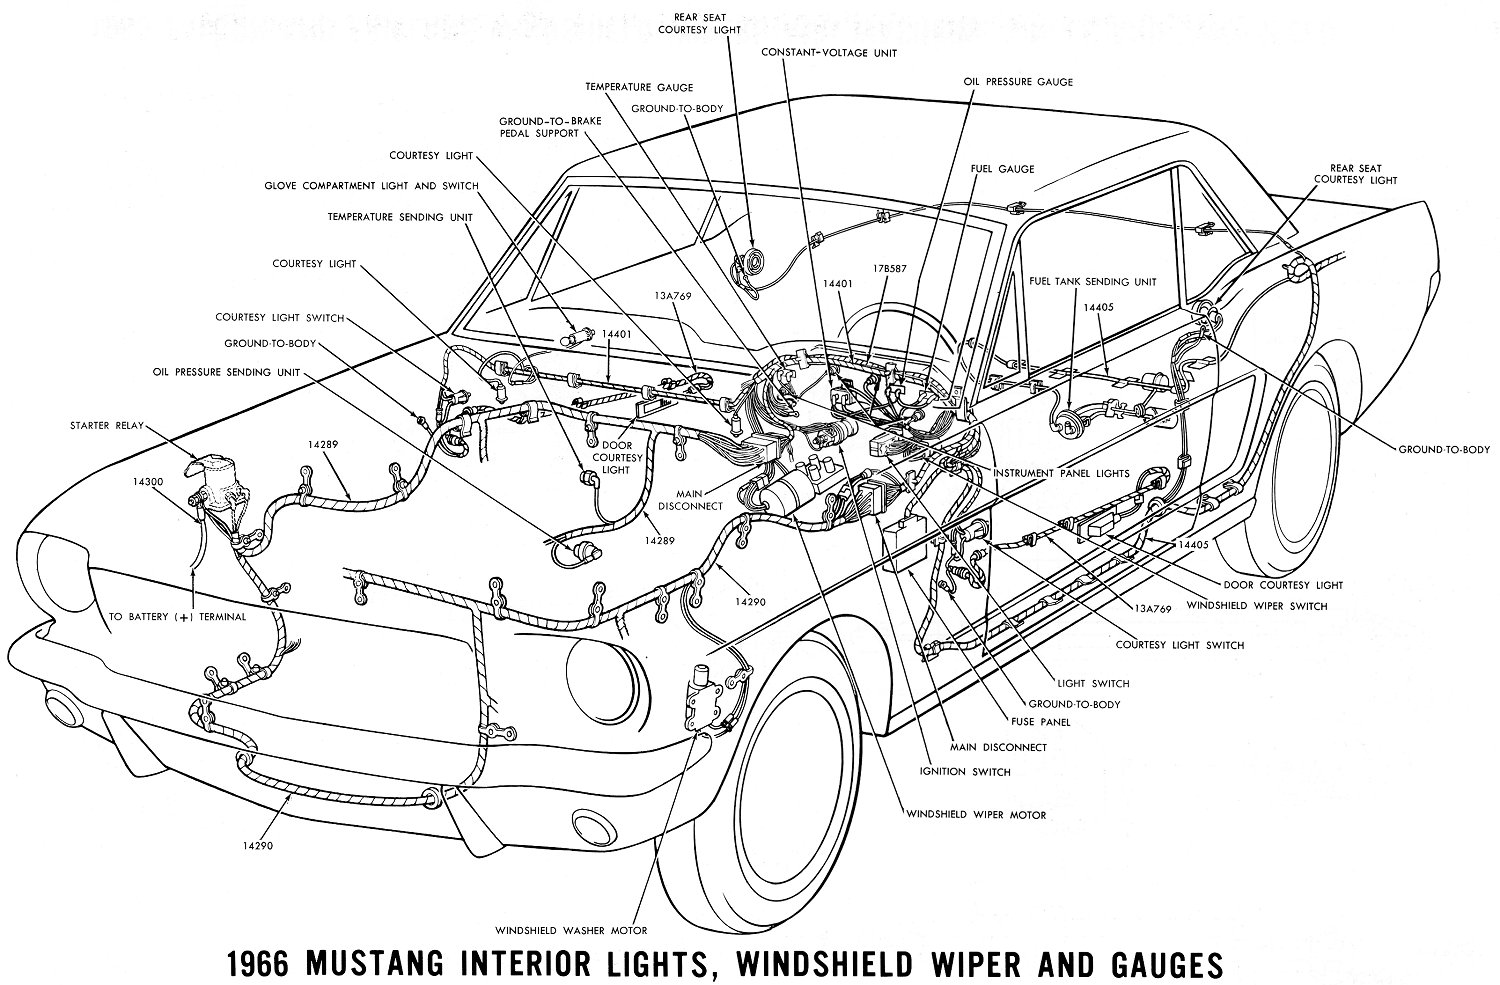 66inter 1966 mustang wiring diagrams average joe restoration 66 mustang alternator wiring diagram at couponss.co